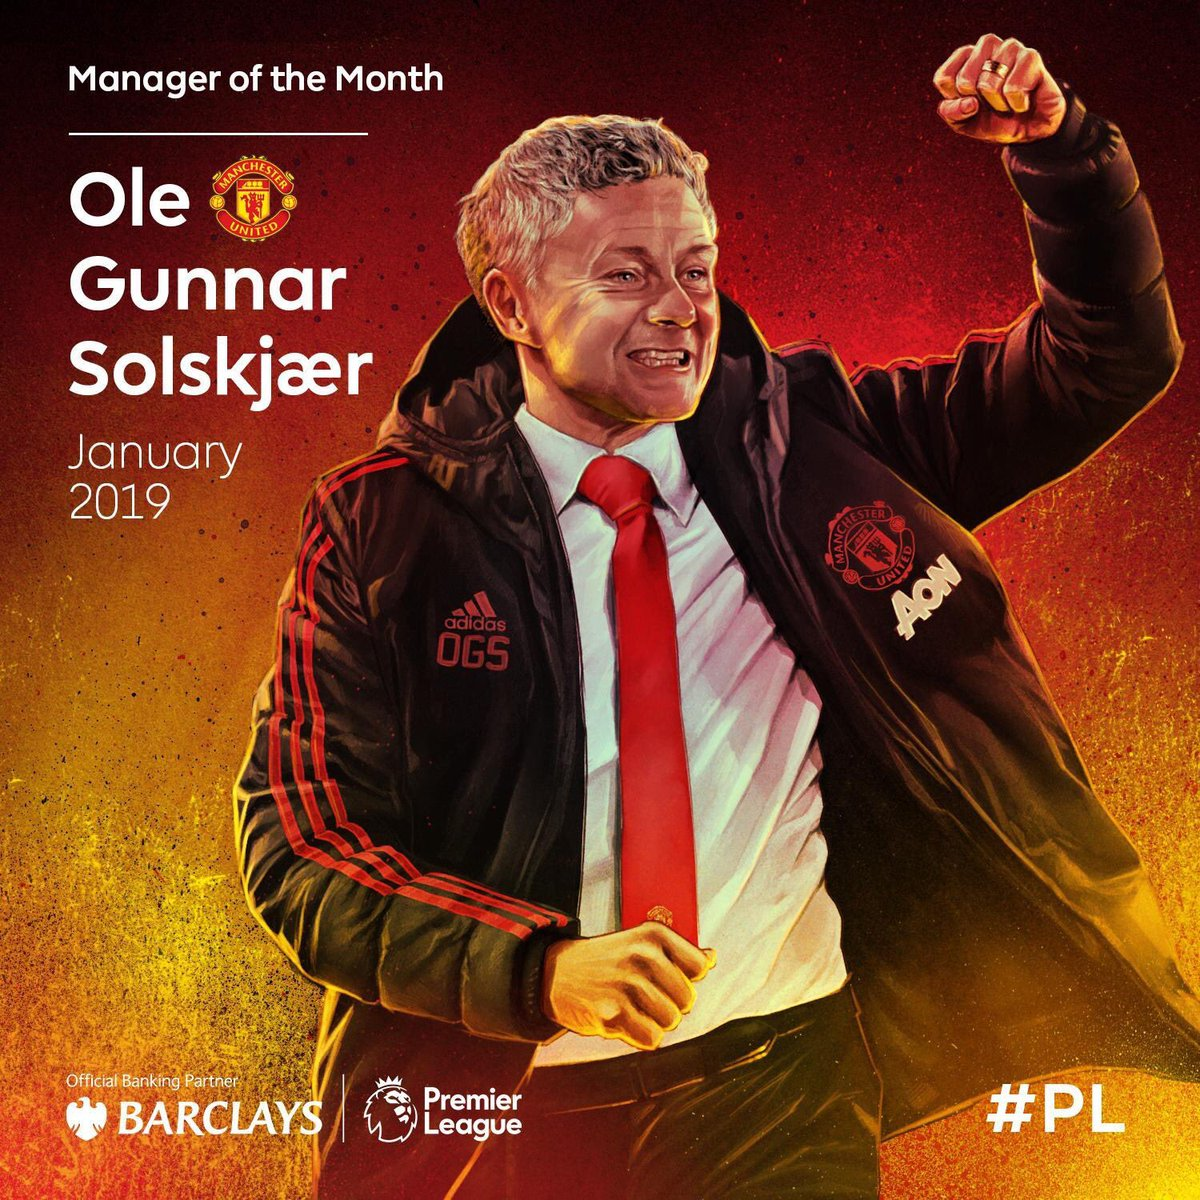 Ole Gunnar Solskjaer wins Barclays Premier League Manager of the Month for January! He is the first Manchester United manager to do so since Sir Alex Ferguson 🔴